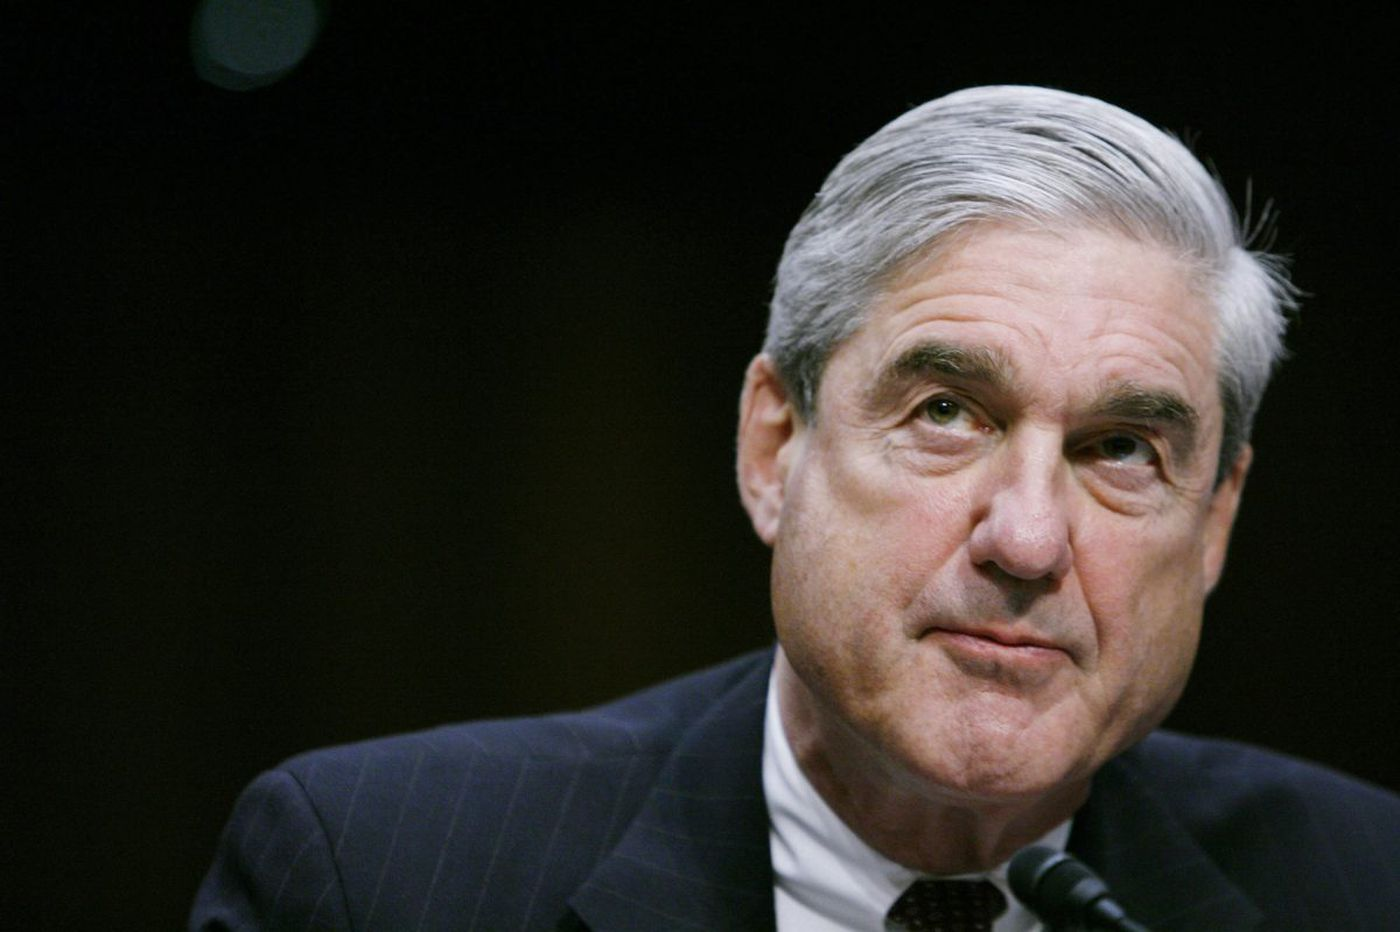 What's next for Trump? Democrats likely to push for unredacted Mueller report